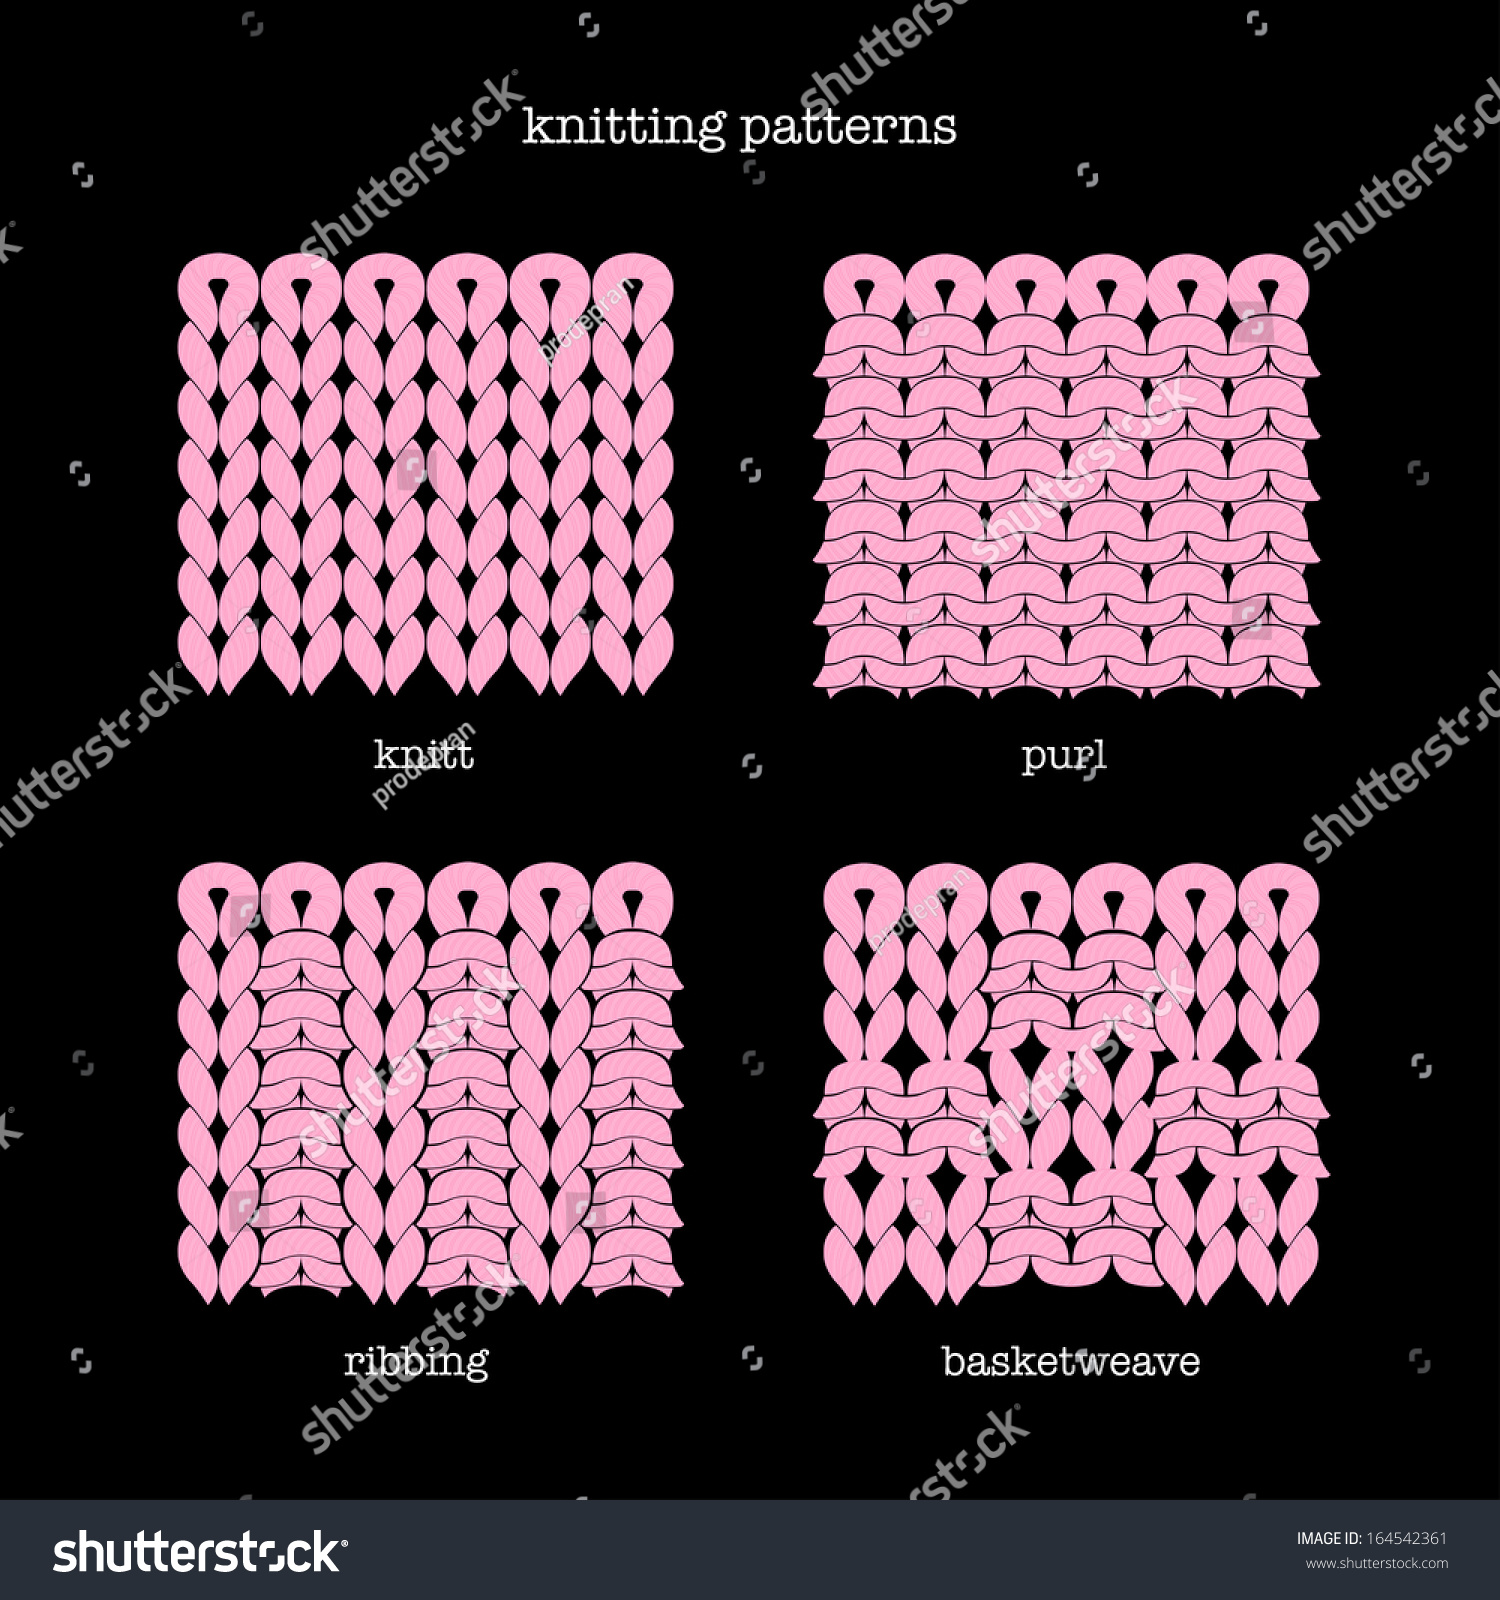 Knitting Vector Patterns : Knitting patterns stock vector shutterstock